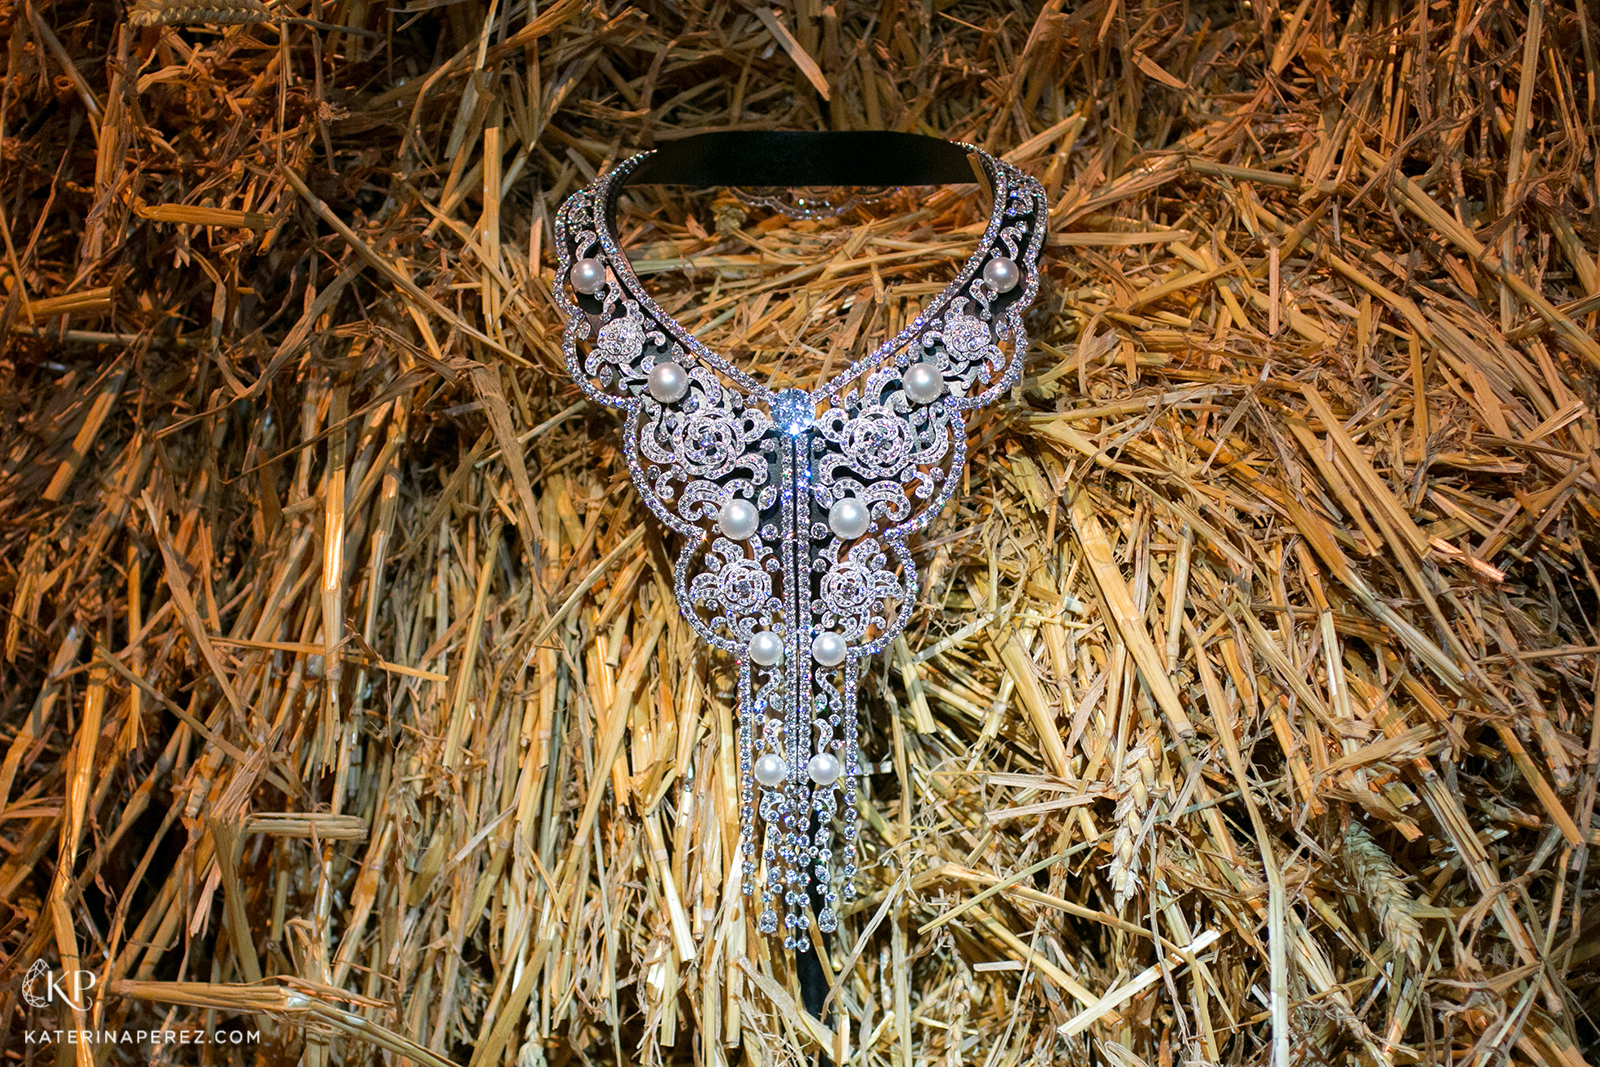 Chanel 'Le Paris Russe de Chanel' collection 'Sarafane' necklace with diamonds and pearls in white gold